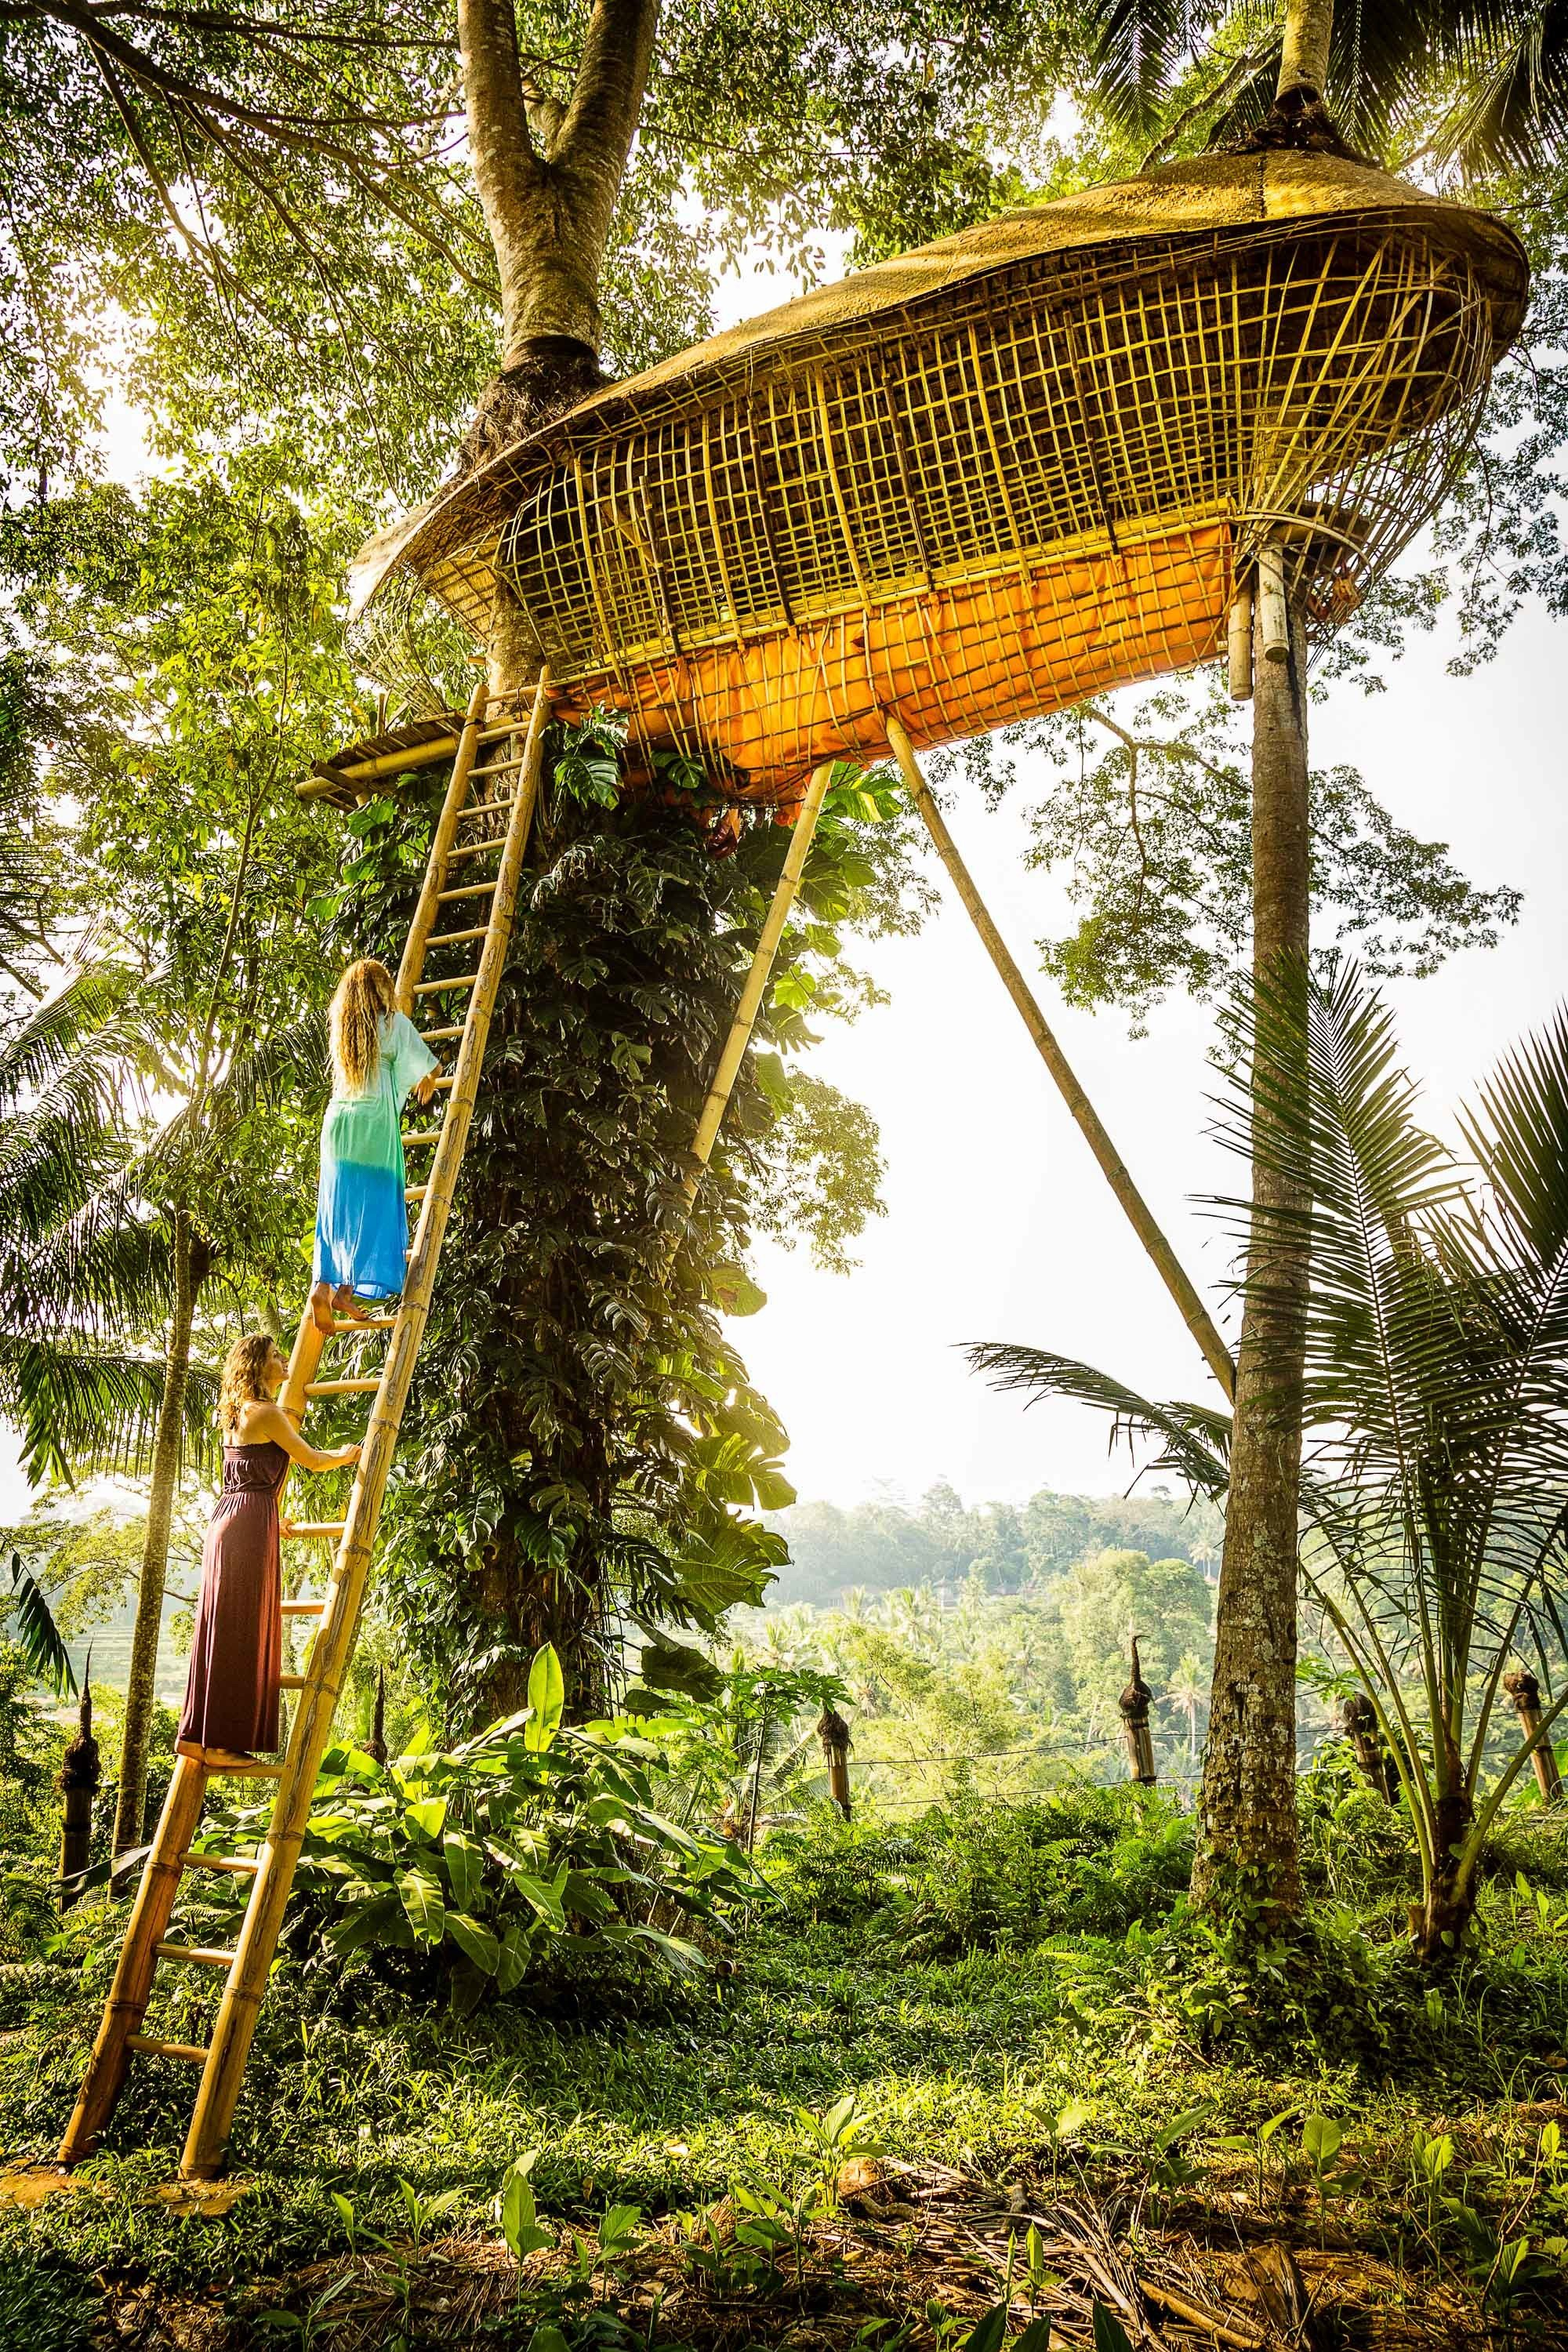 Boutique Hotels Hotels tree outdoor plant grass Jungle outdoor structure arecales Forest grass family sky leisure landscape